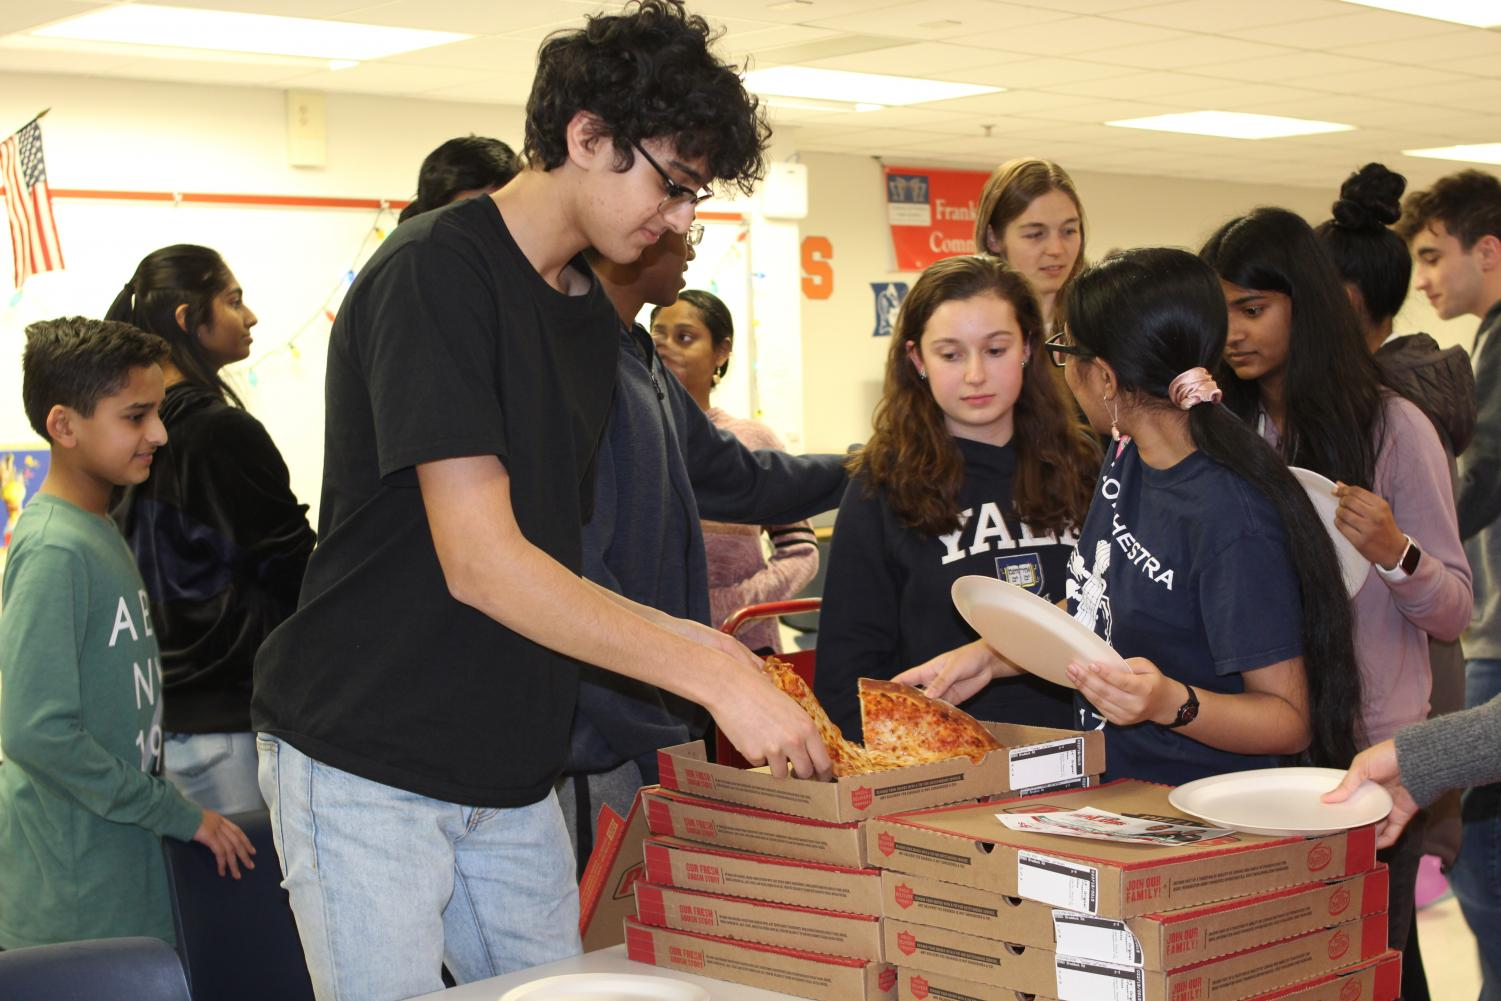 Everyone+crowds+the+pizza+boxes+with+sophomore+Raunak+Daga+grabbing+the+first+slice+of+the+event.